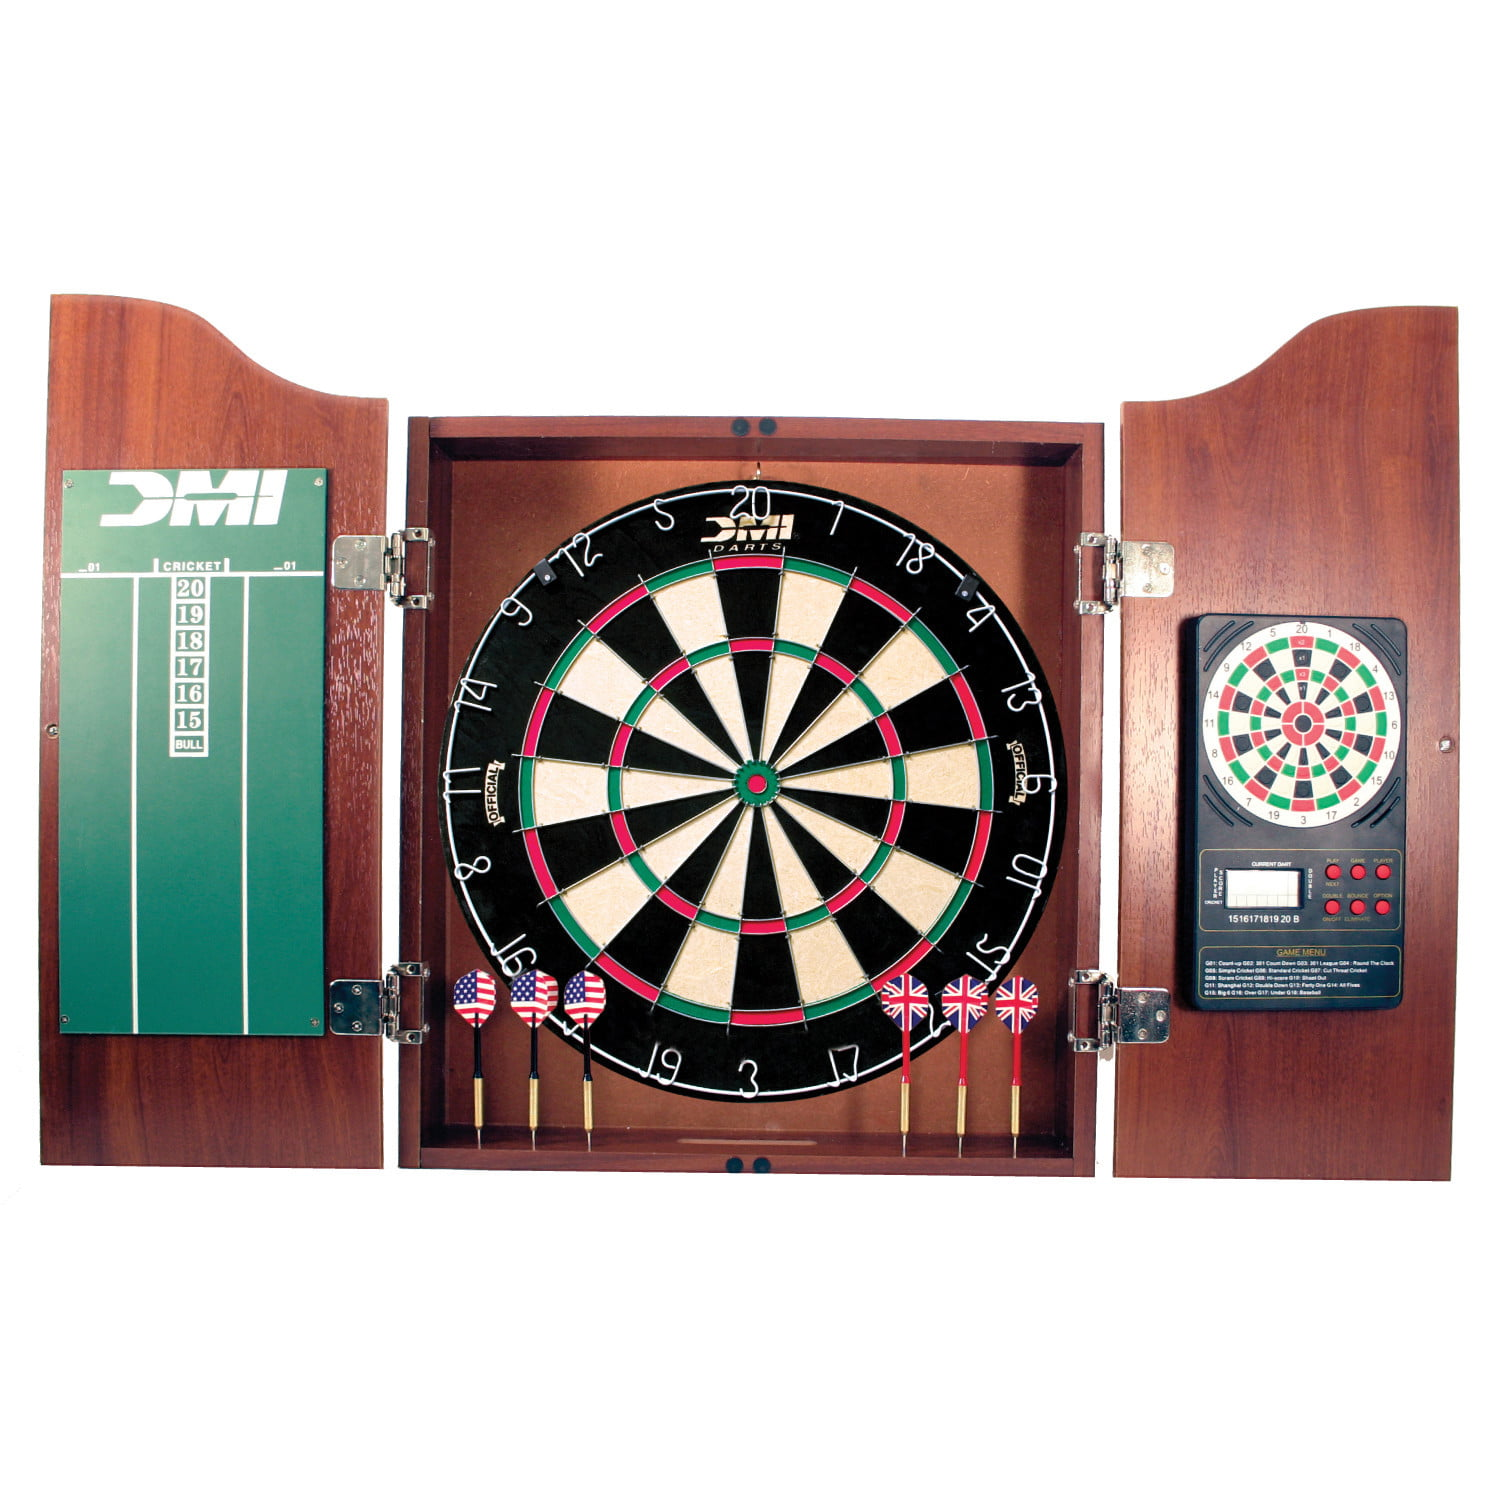 DMI Sports Deluxe Bristle Dartboard Cabinet Set with Electronic Scorer Includes 2 Dart Sets and a Chalk Scoreboard �... by DMI Sports